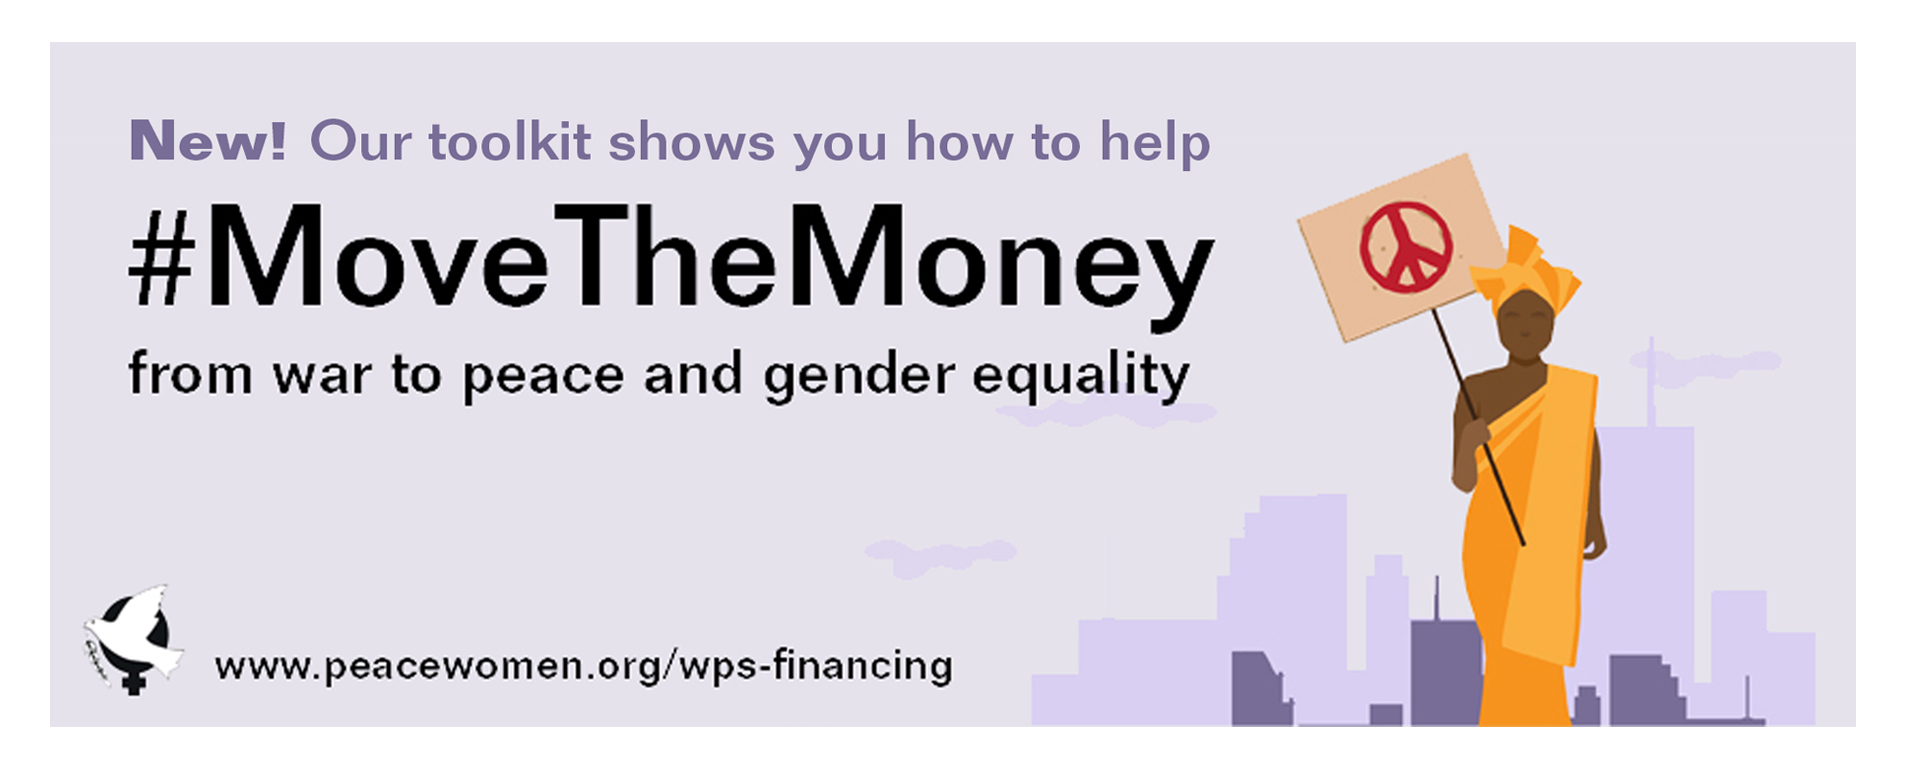 Learn how to help #MoveTheMoney from war to peace!